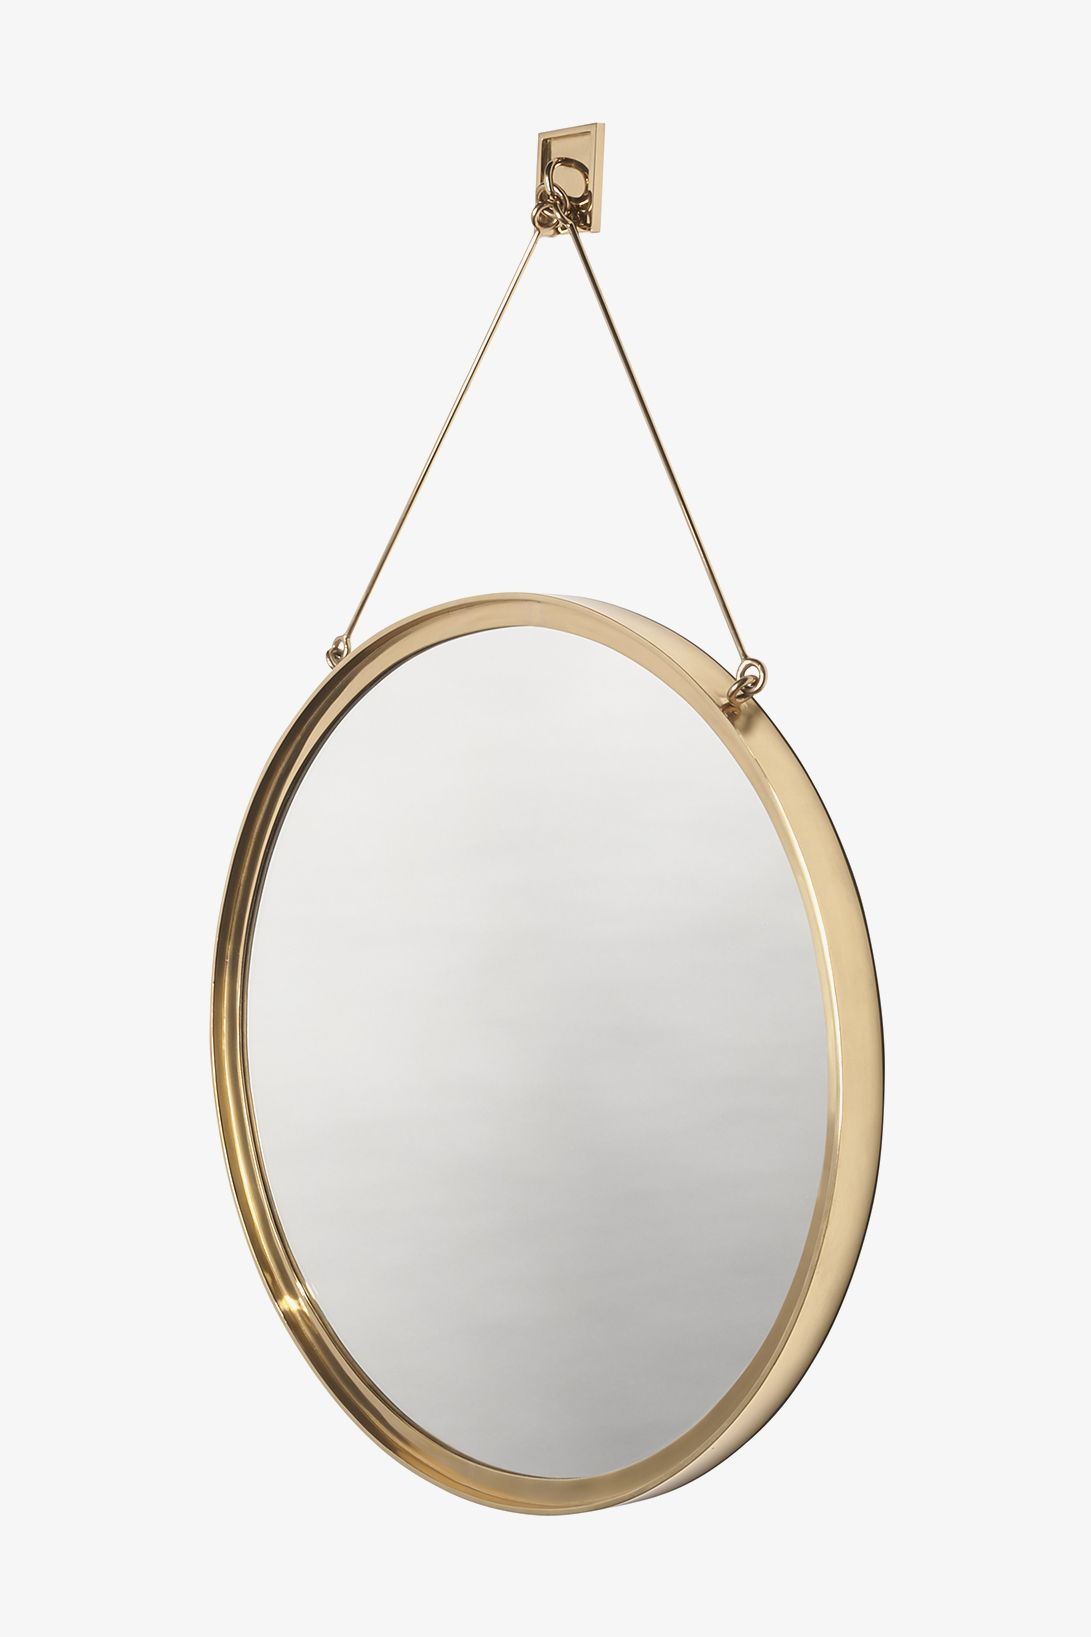 Latchet Wall Mounted Round Mirror 23 1 2 X 1 1 2 X 37 5 8 Mirror Round Mirrors Round Mirror Bathroom